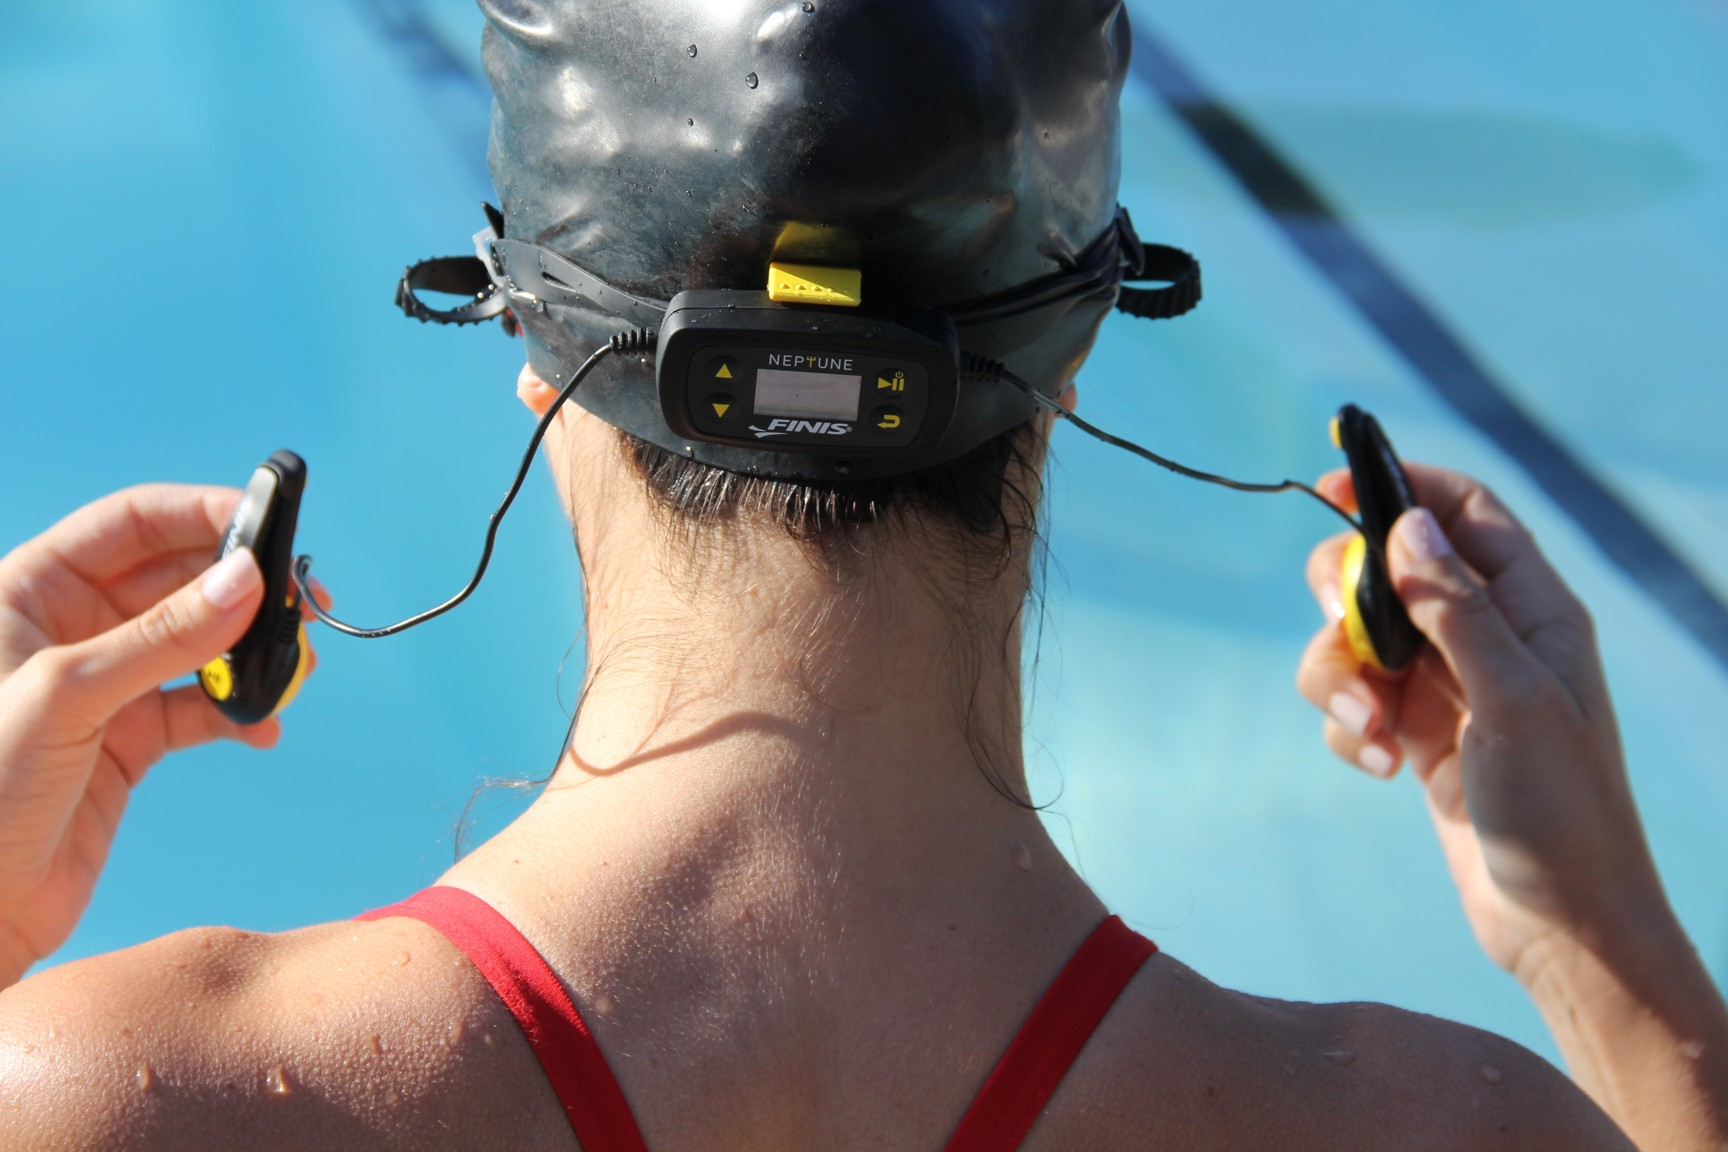 Swimmer putting on a waterproof headset